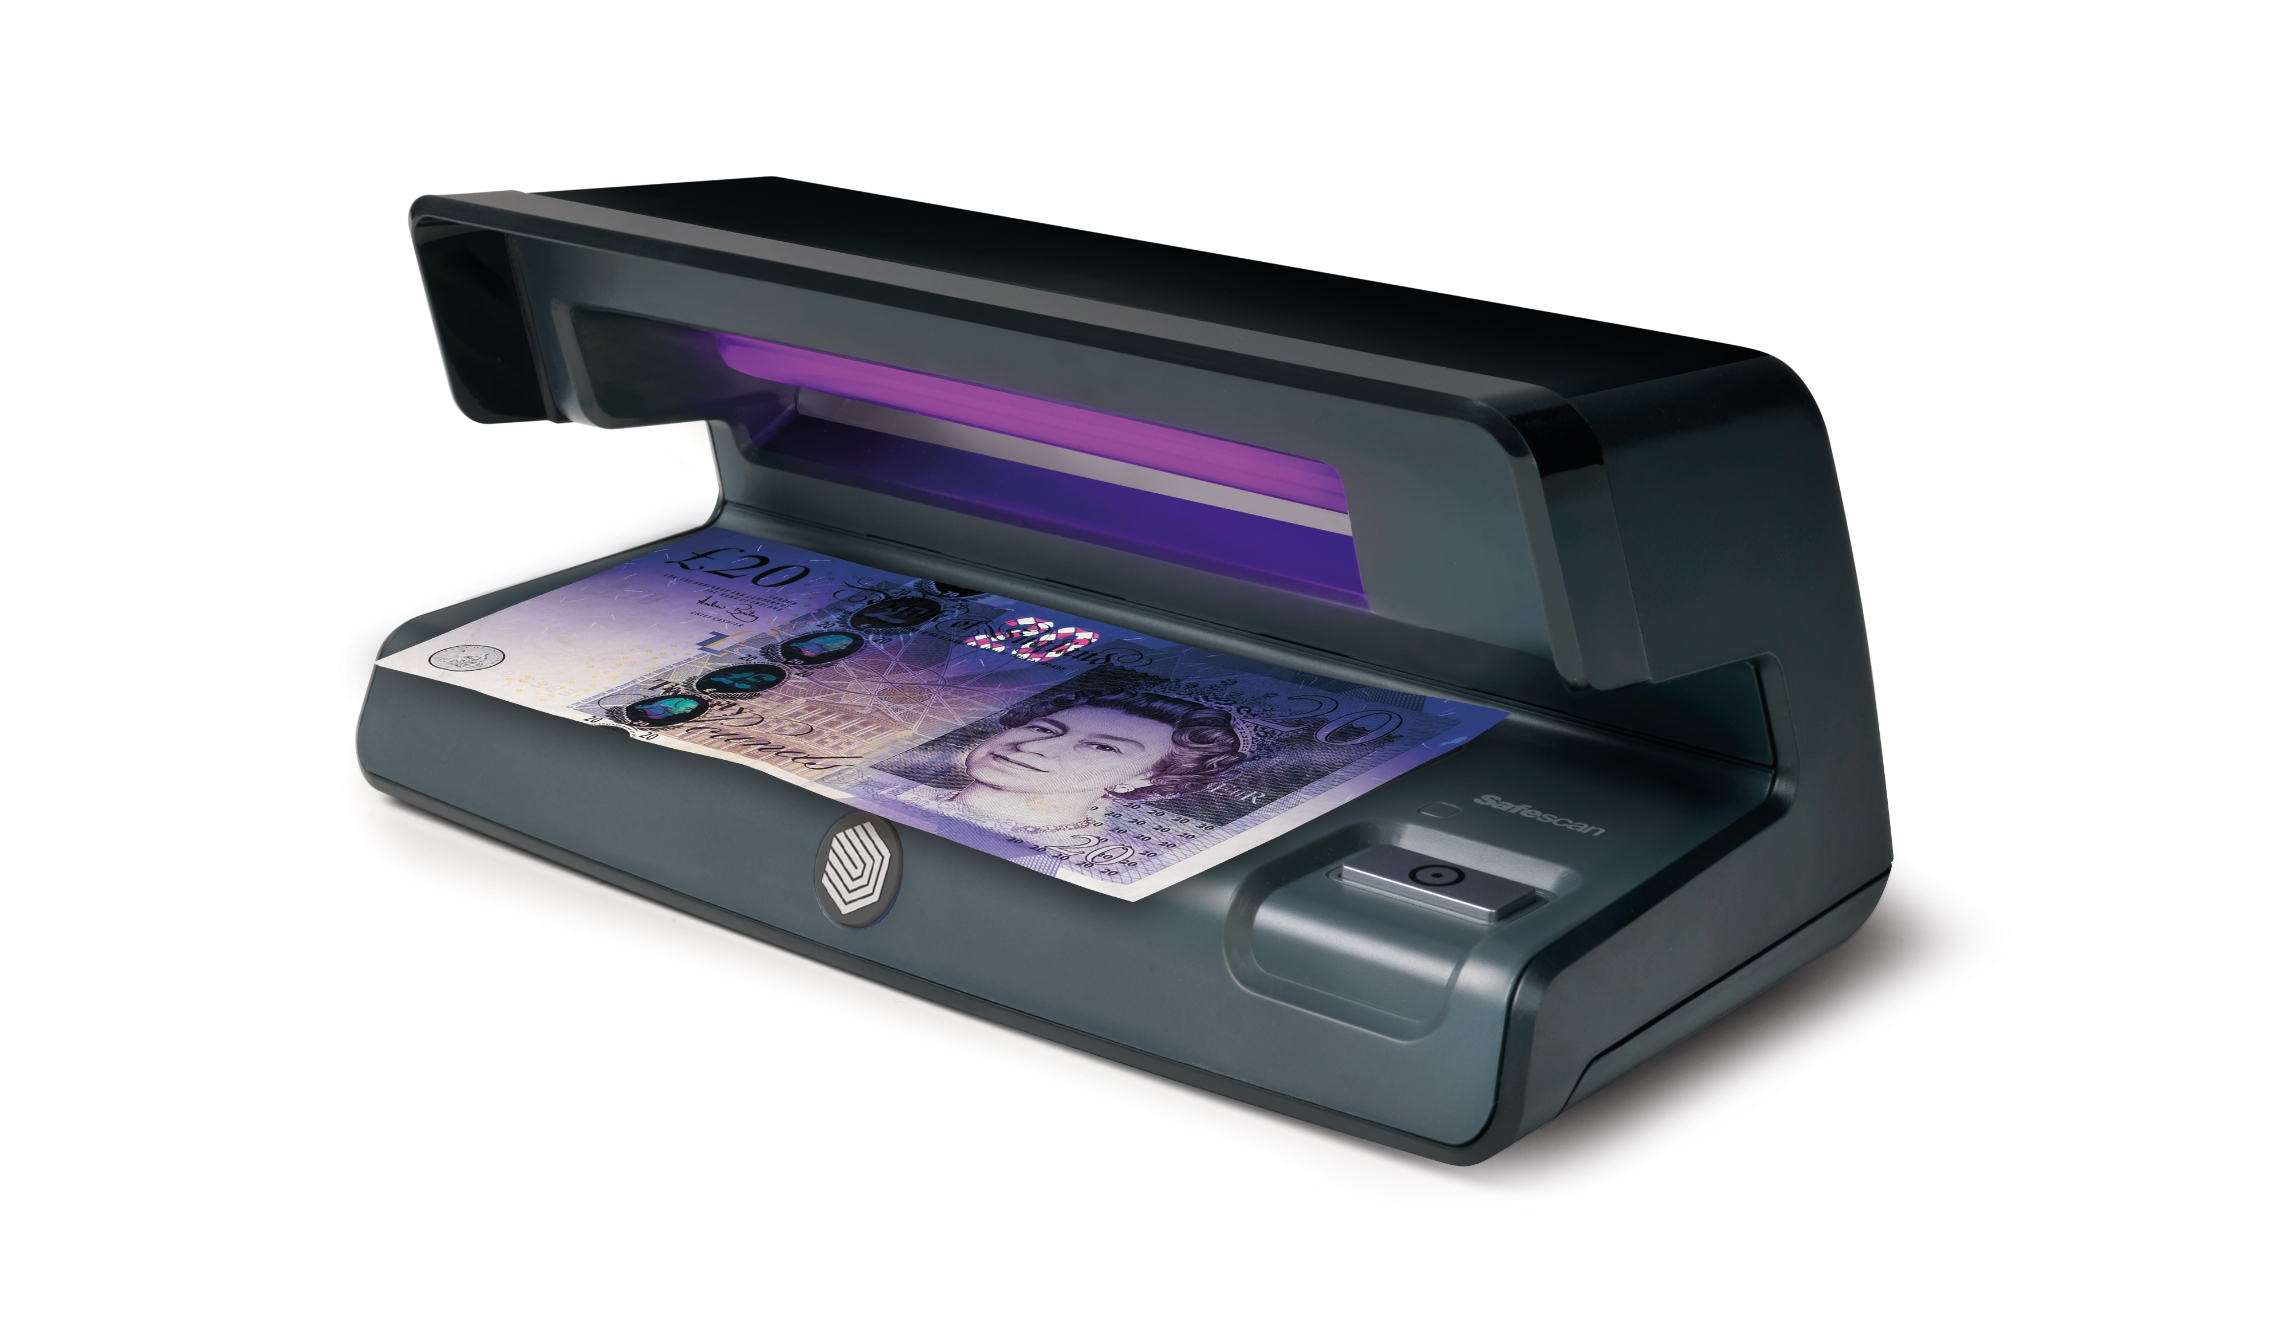 safescan-50-uv-counterfeit-detector